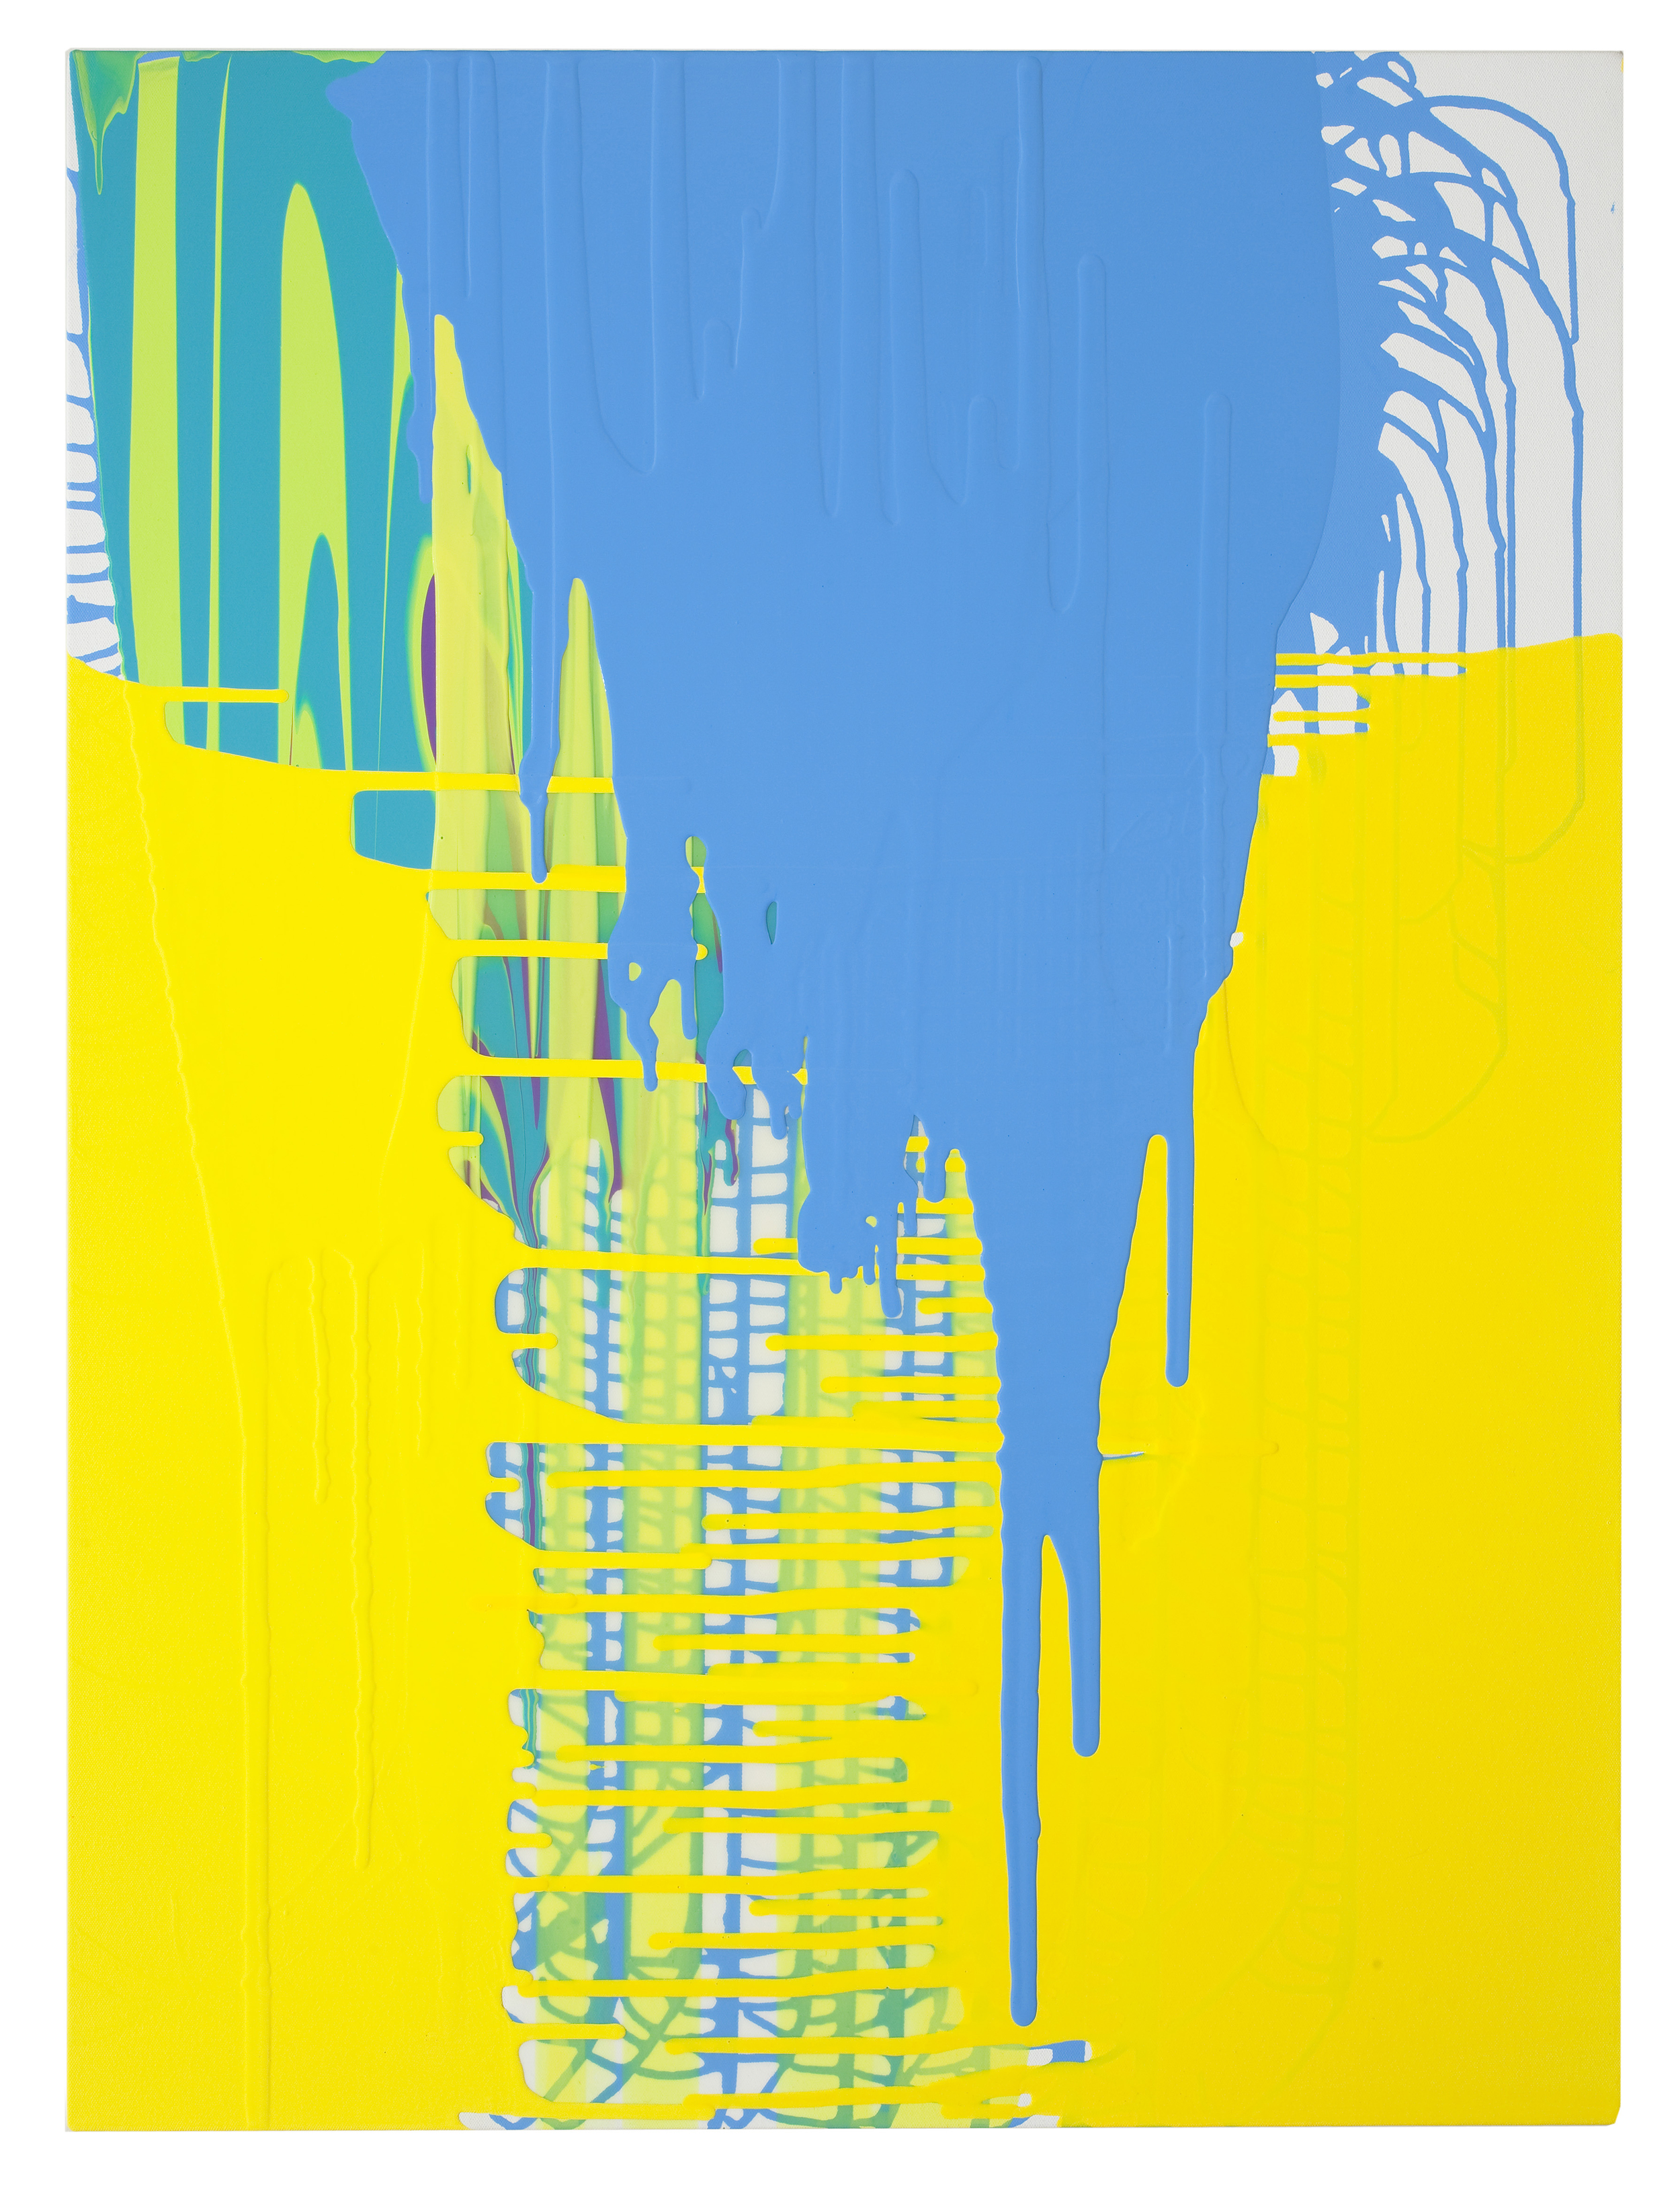 Sunny, 2009 acrylic on canvas 40 inches x 30 inches